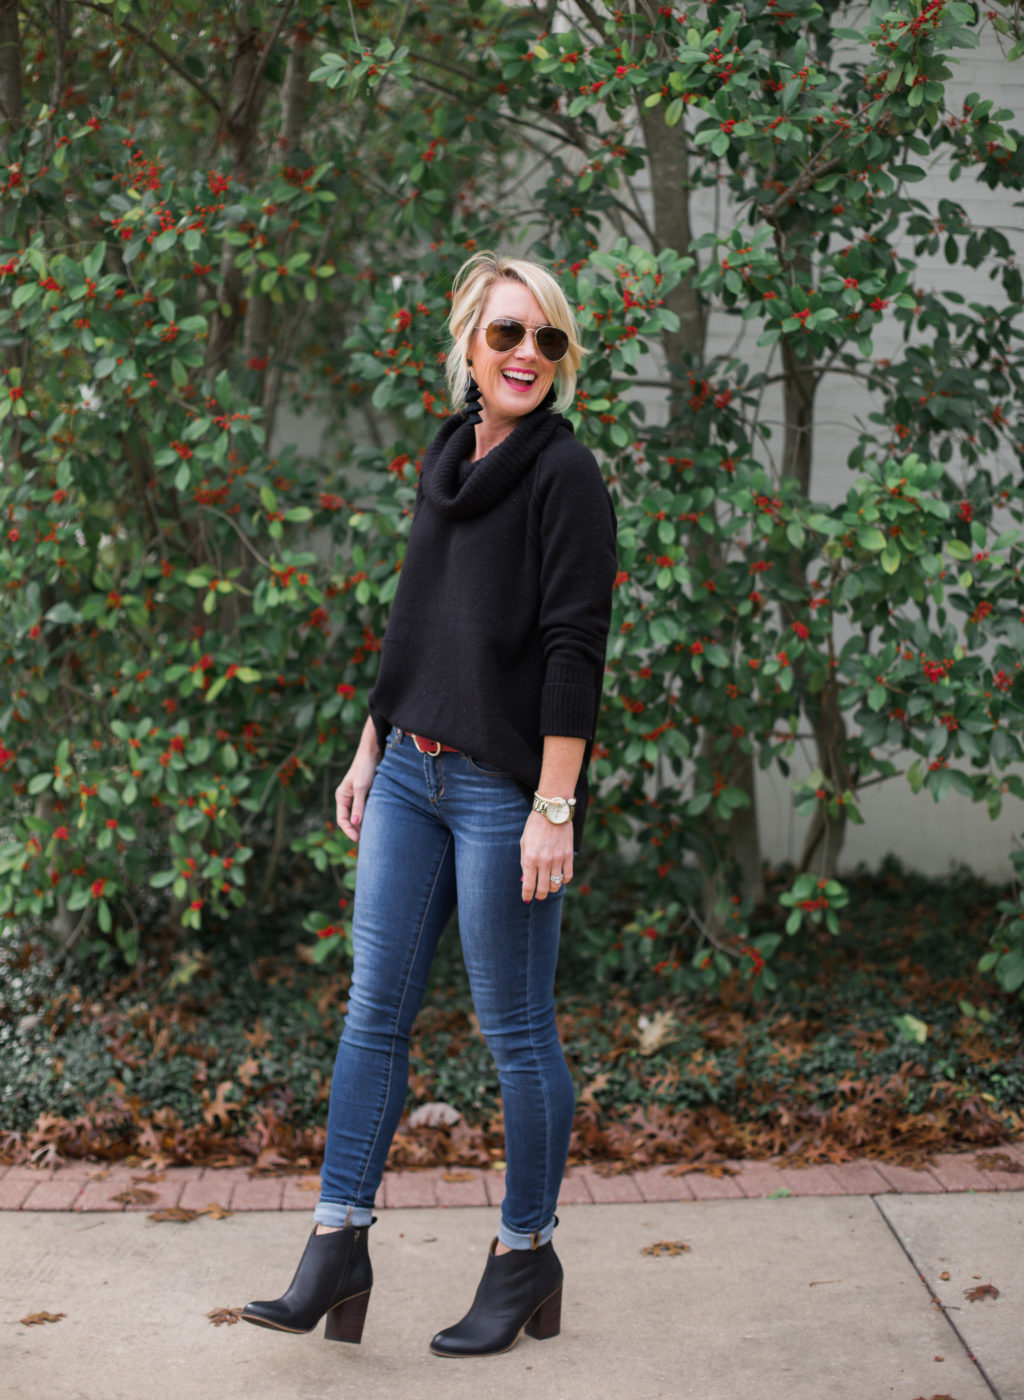 7f2f6c06e92 Sugarplum Style Tip | How to Wear Ankle Boots with Skinny Jeans | hi ...